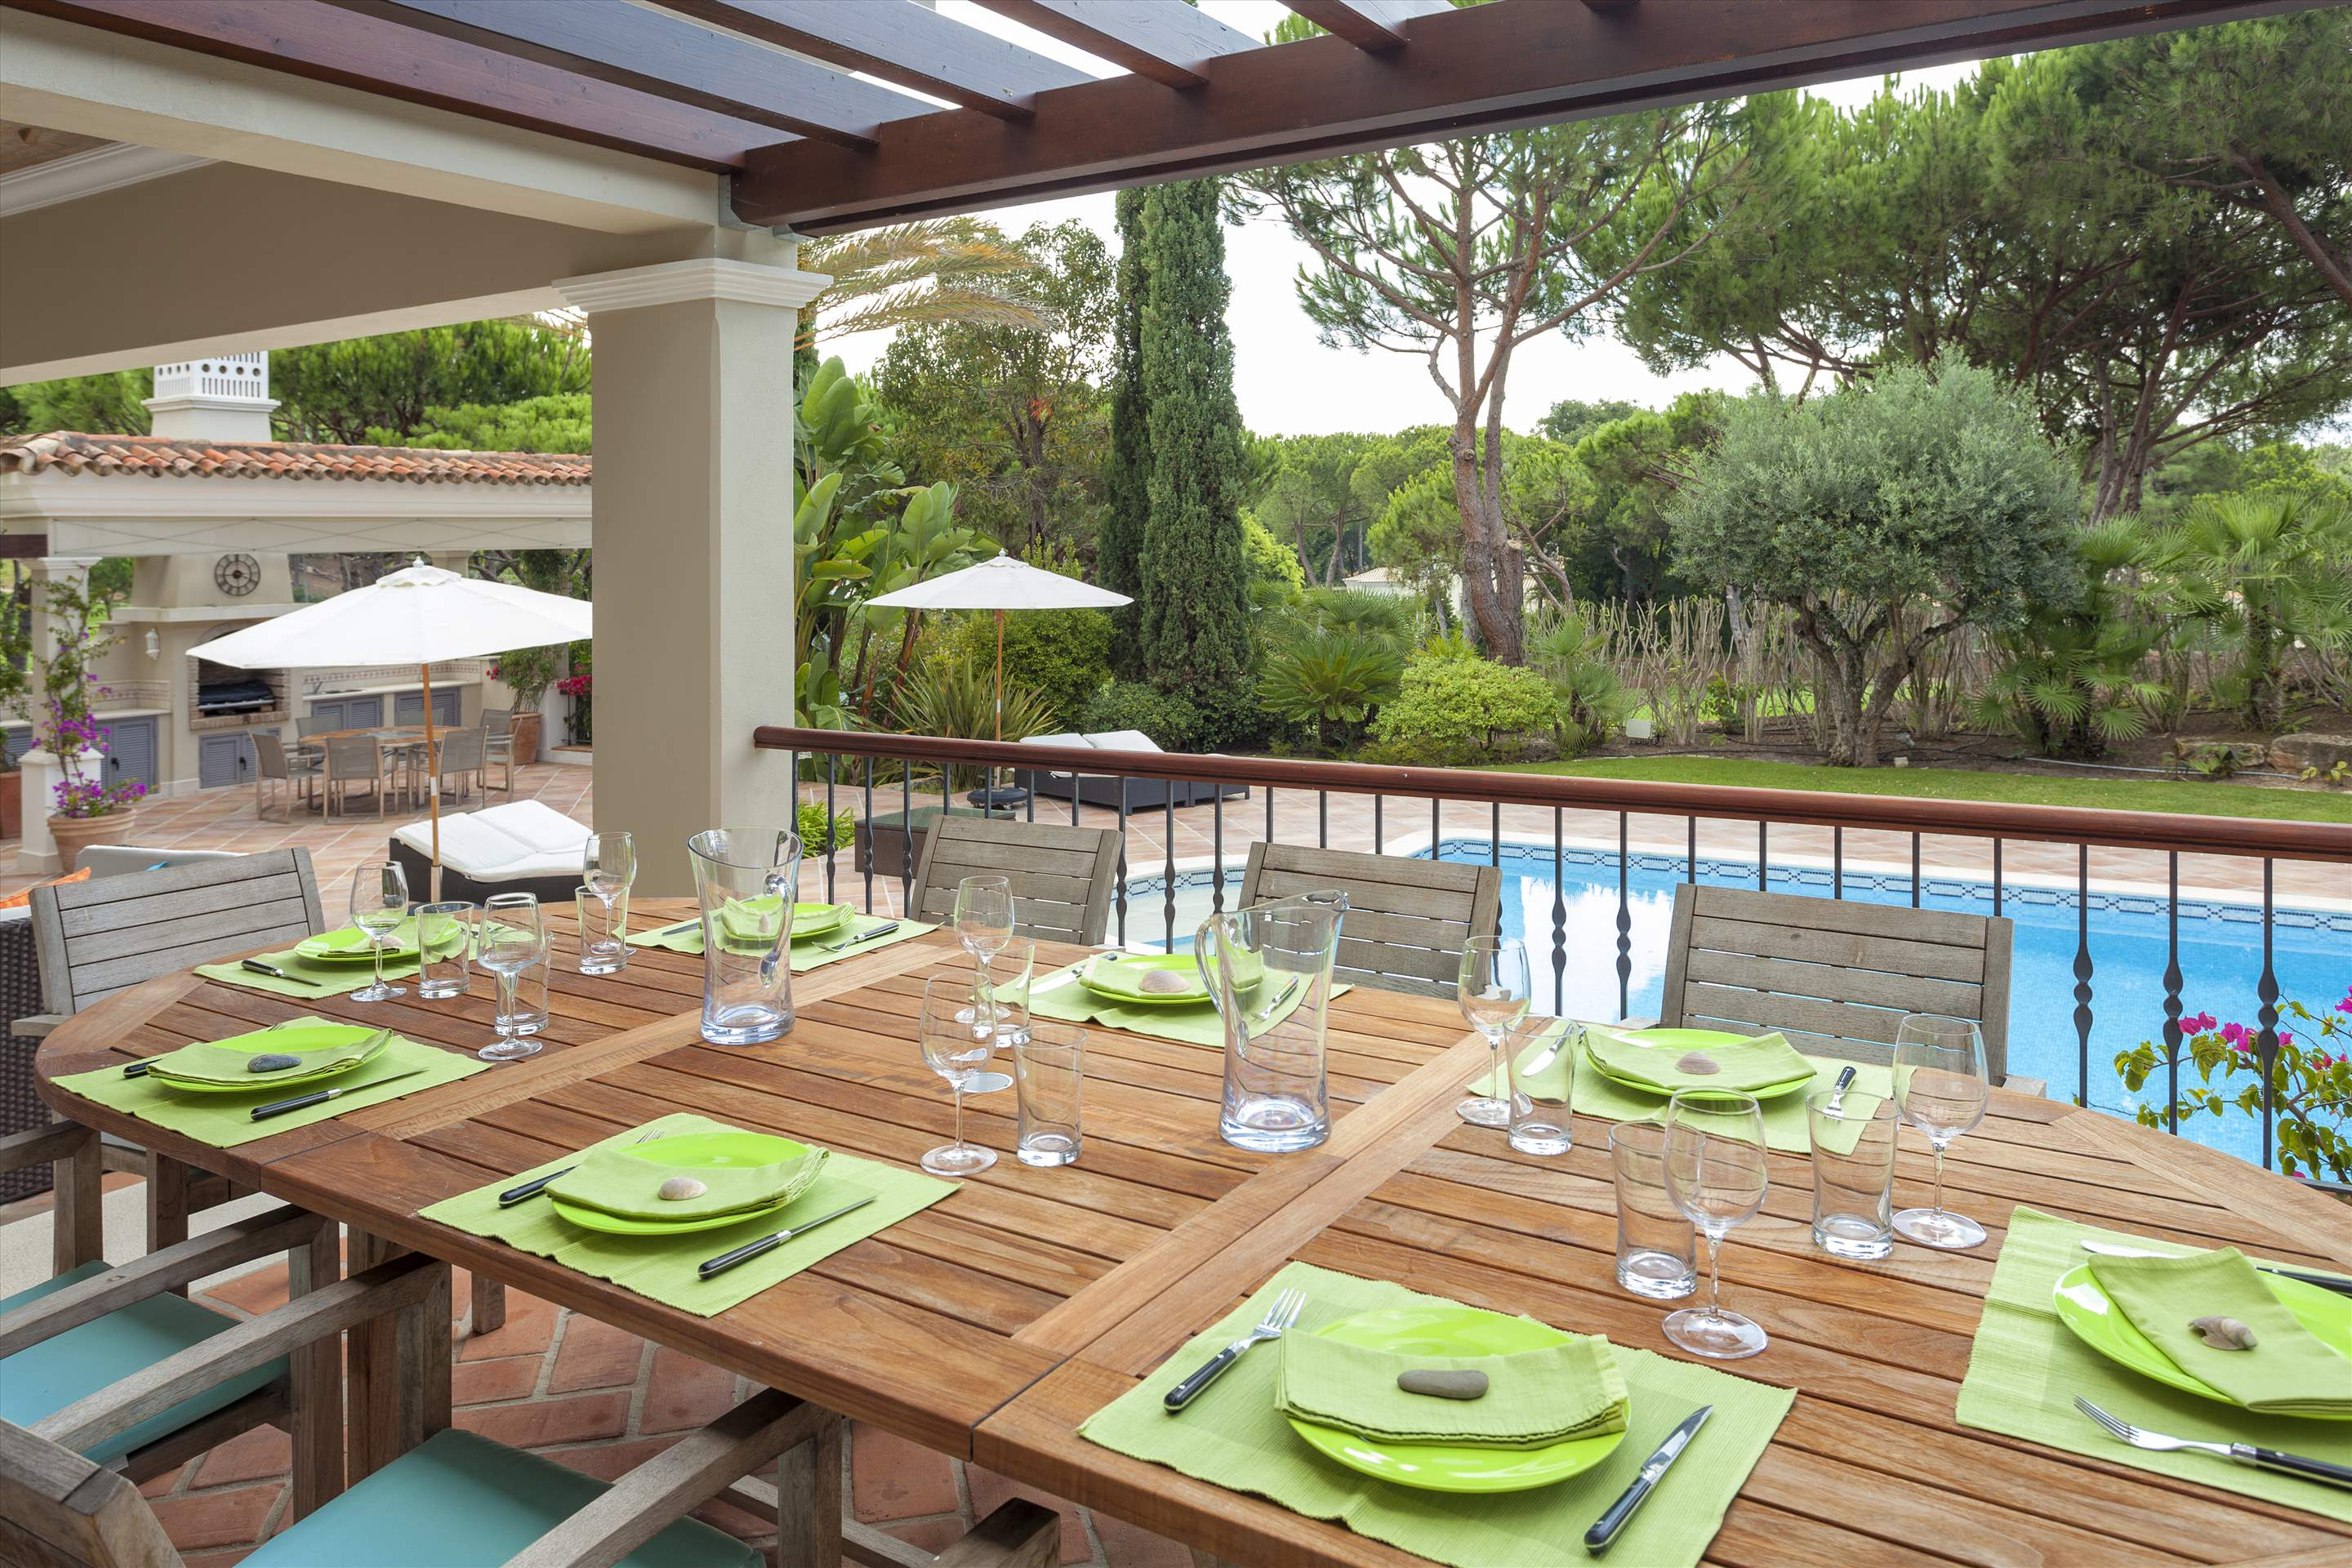 Villa Campainha, 4 Bedroom Rental, 4 bedroom villa in Quinta do Lago, Algarve Photo #10